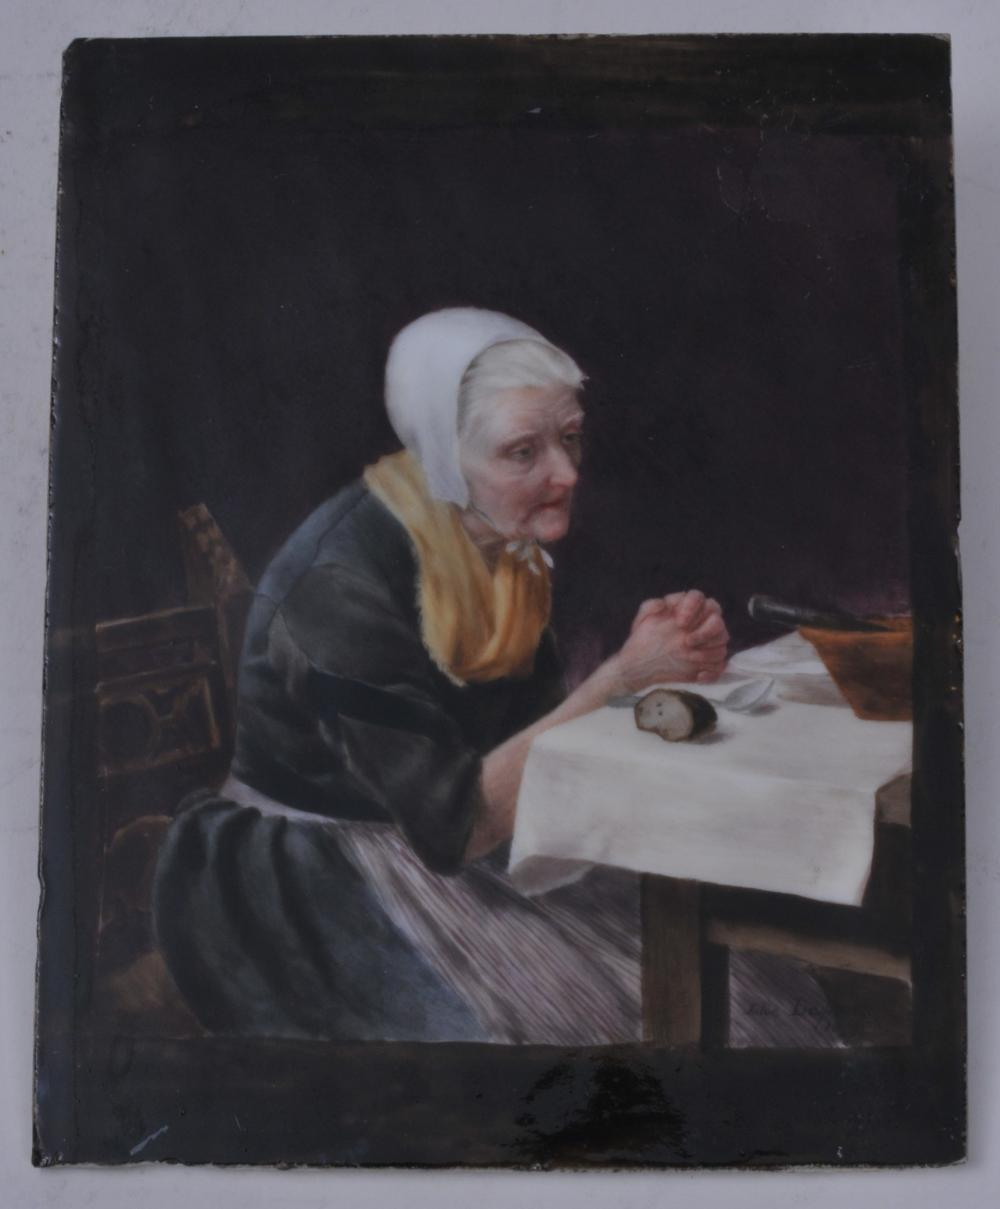 "Lot 247: 19th century hand painted porcelain plaque depicting an elderly woman eating at a table. Artist signed and dated lower right. Julie Dupont, 1879. Unframed. 6"" x 4-3/4"". Glaze loss upper right."